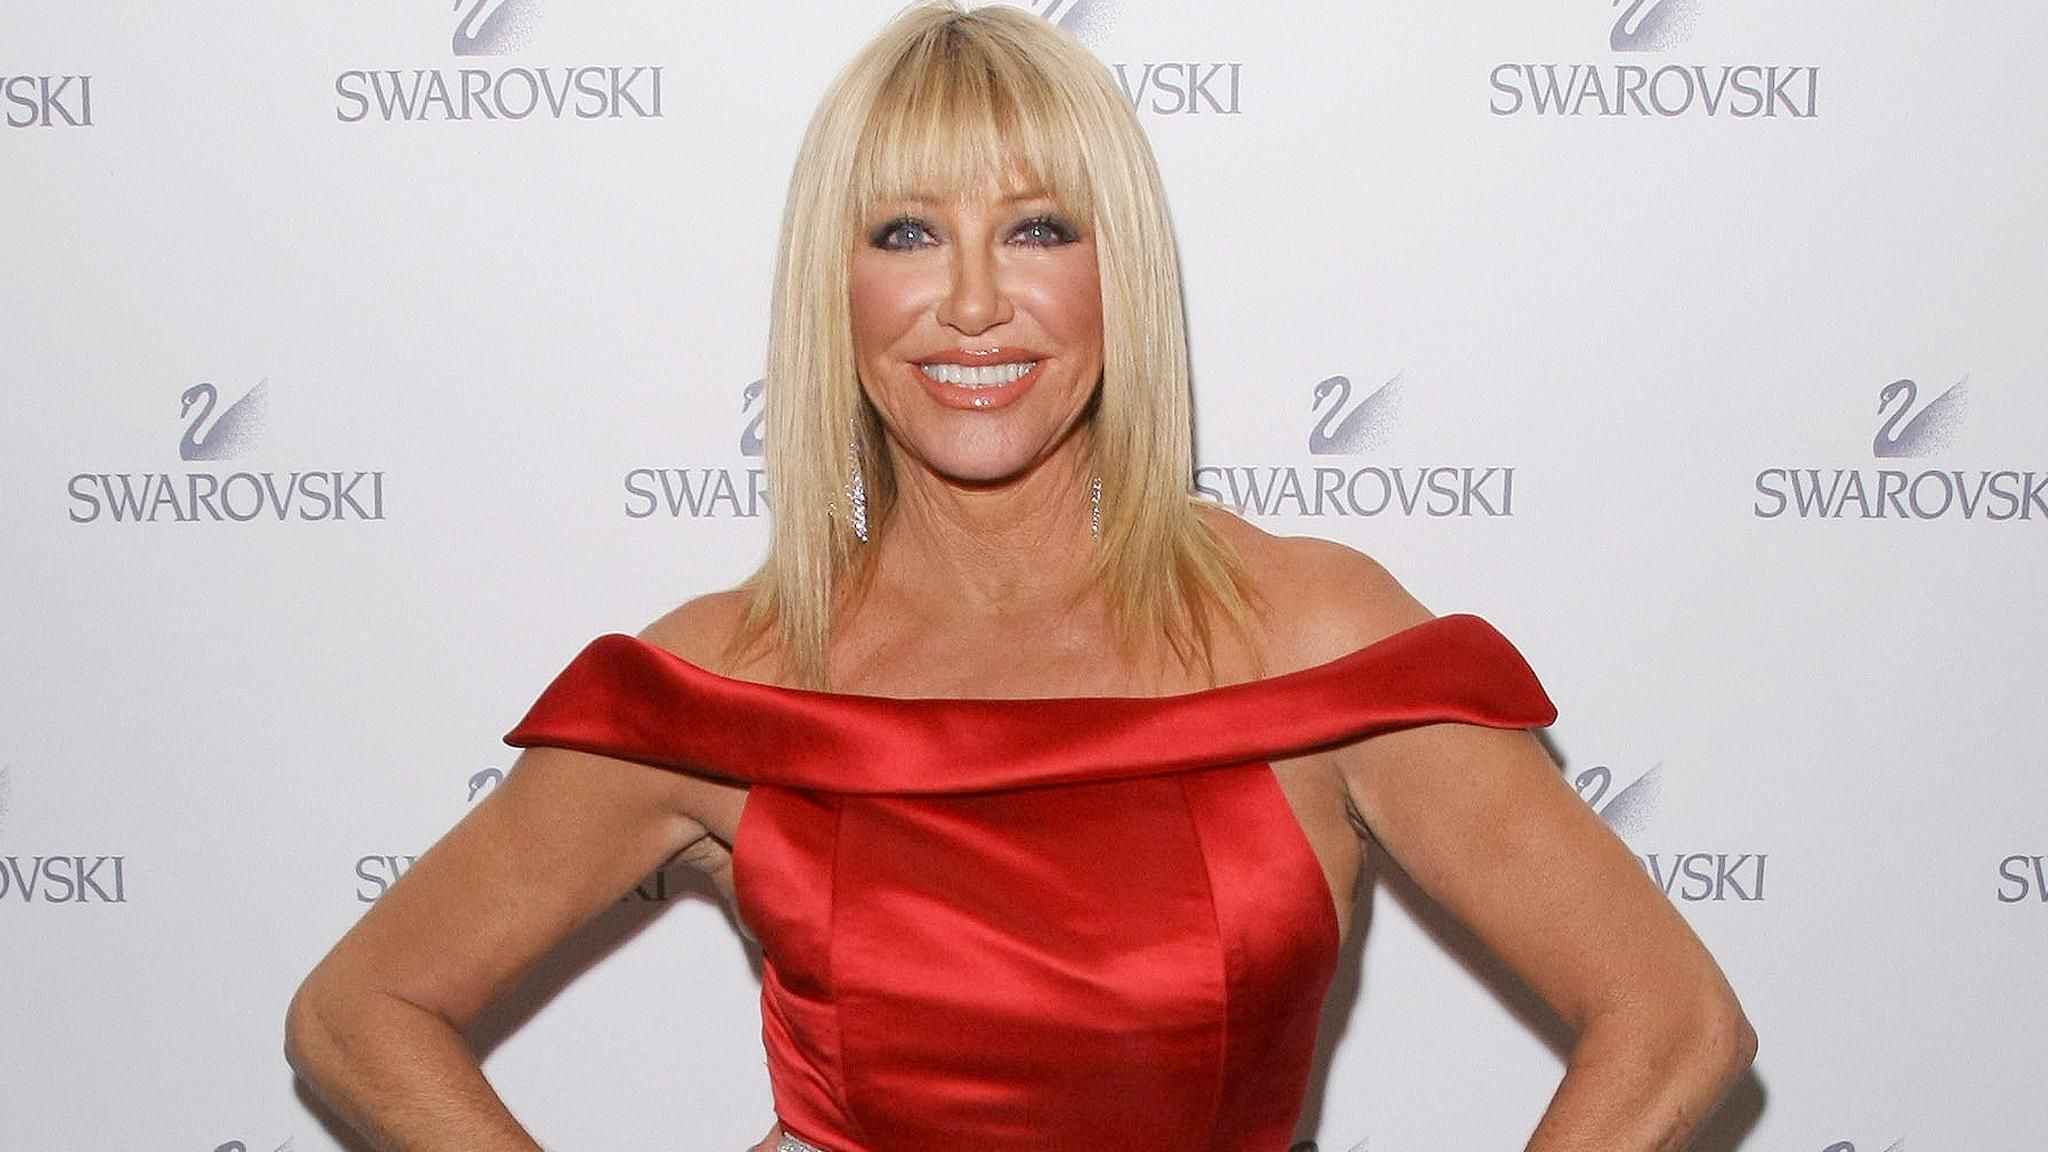 Suzanne somers pictures